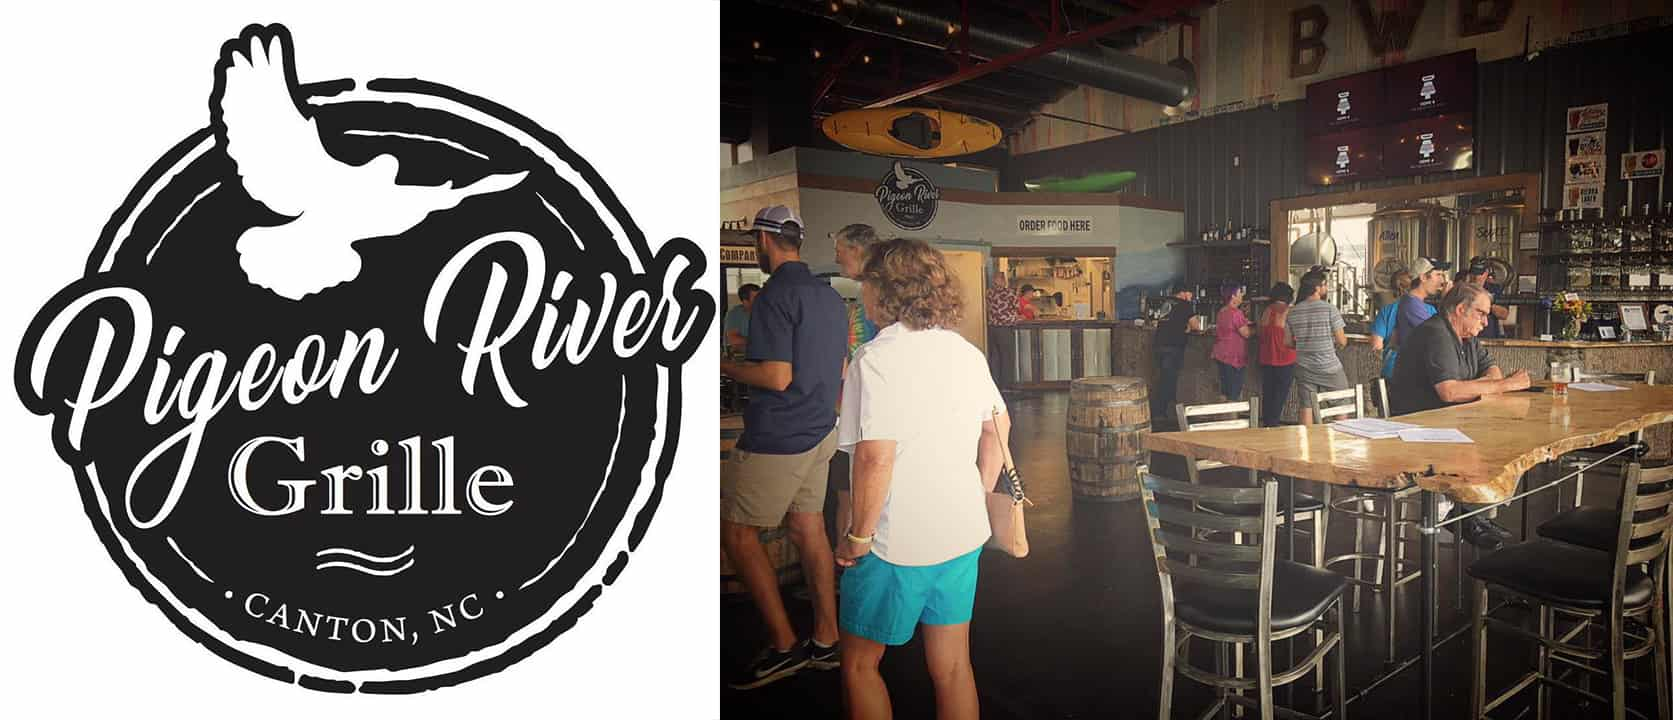 Pigeon River Grill in BearWaters Brewing Co